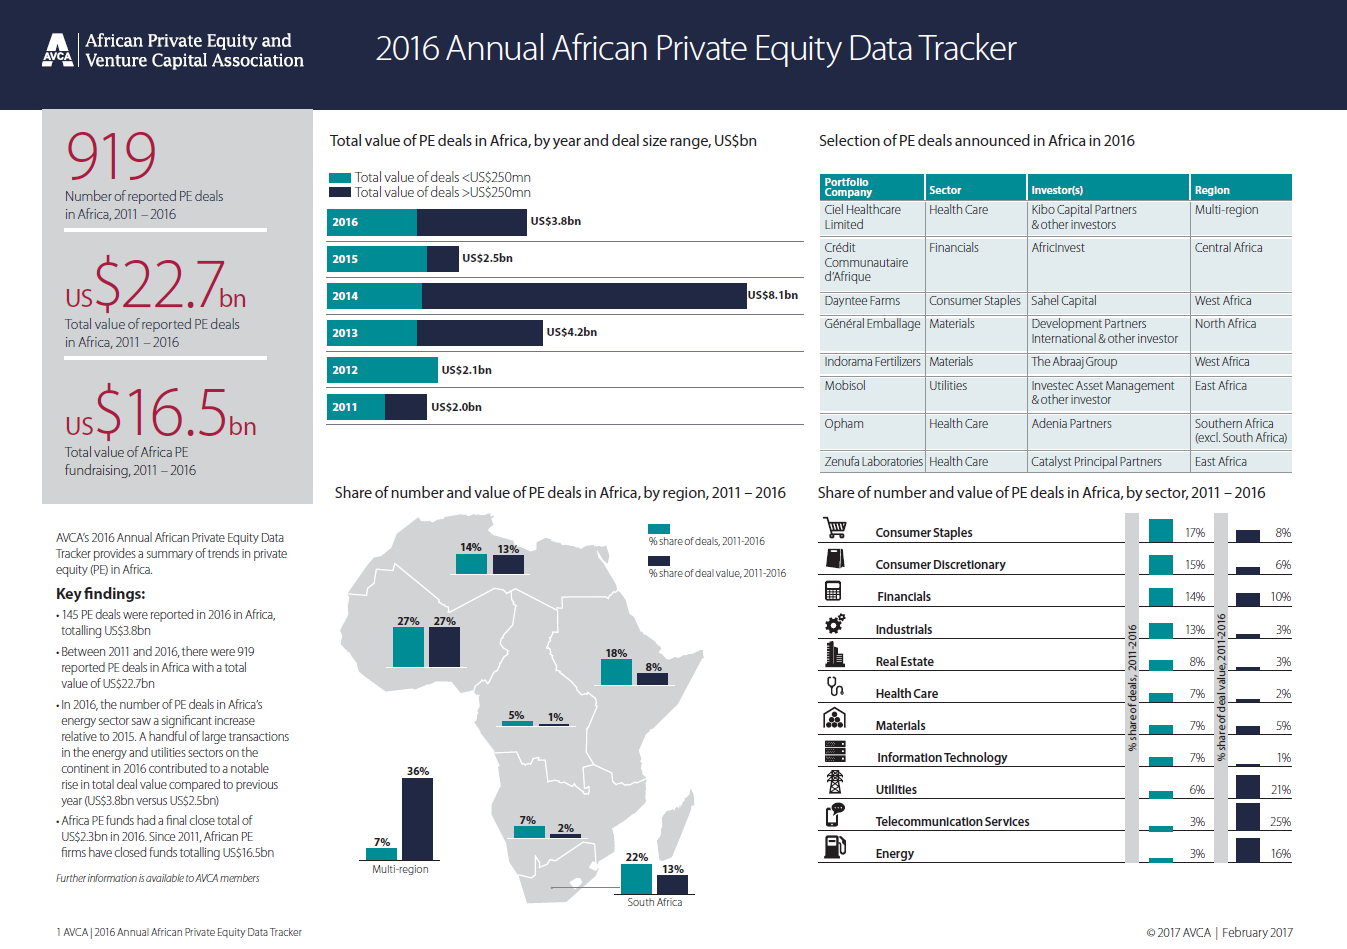 2016 Annual African Private Equity Data Tracker